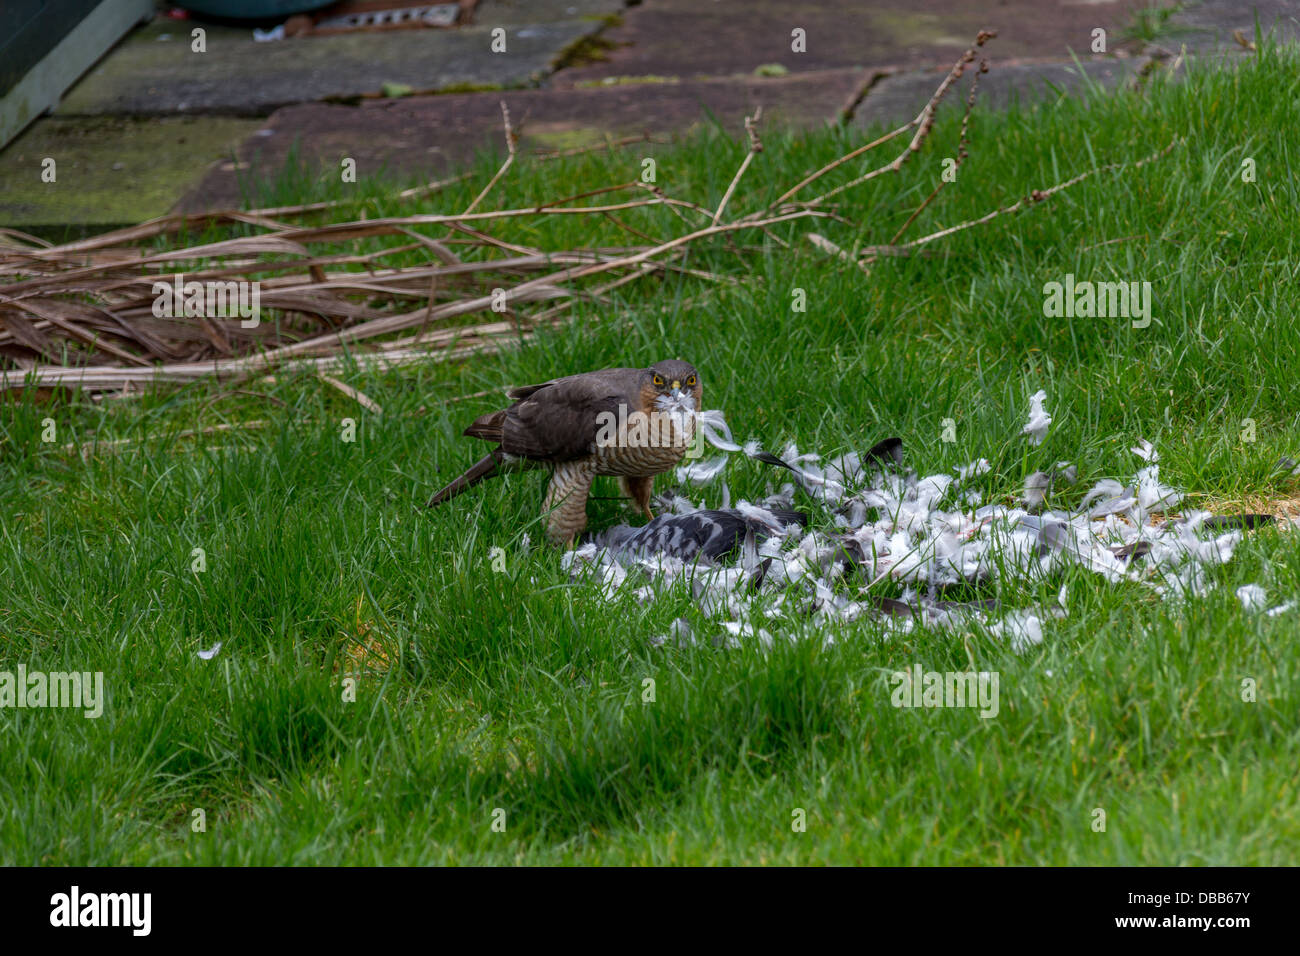 Accipiter Nisus mit Kill, Stockfoto